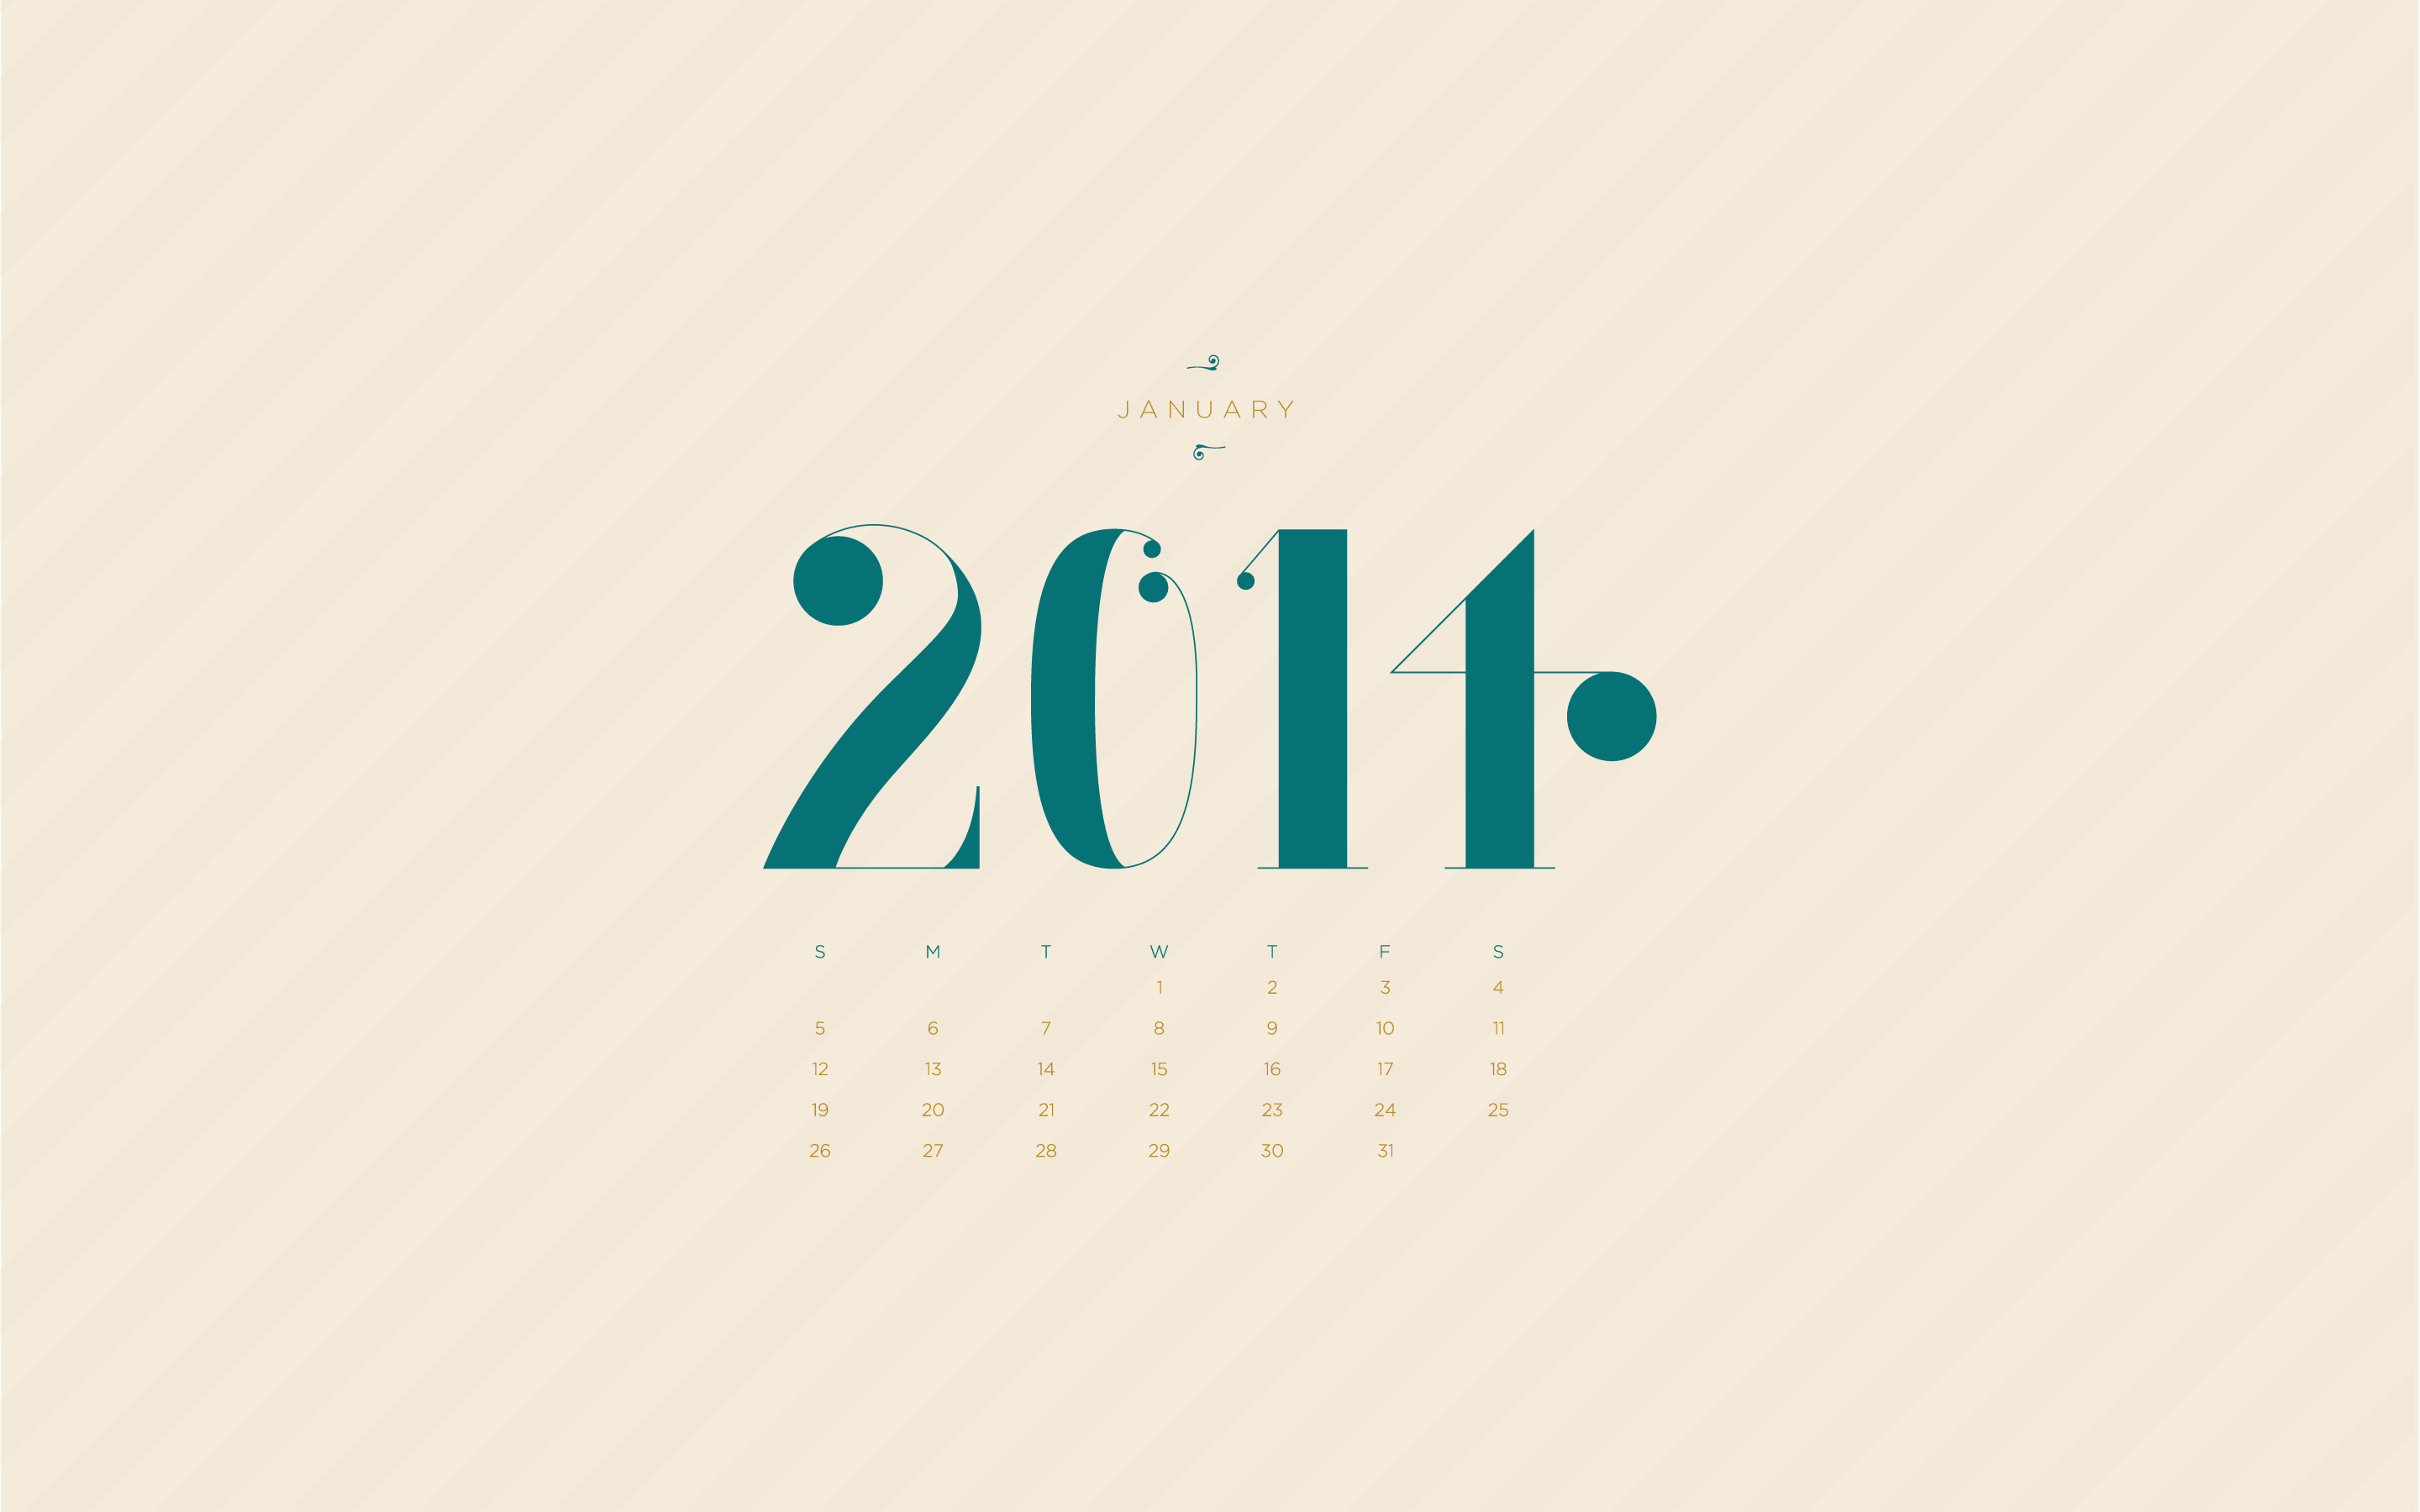 january 2014 desktop calendar wallpaper paper leaf design